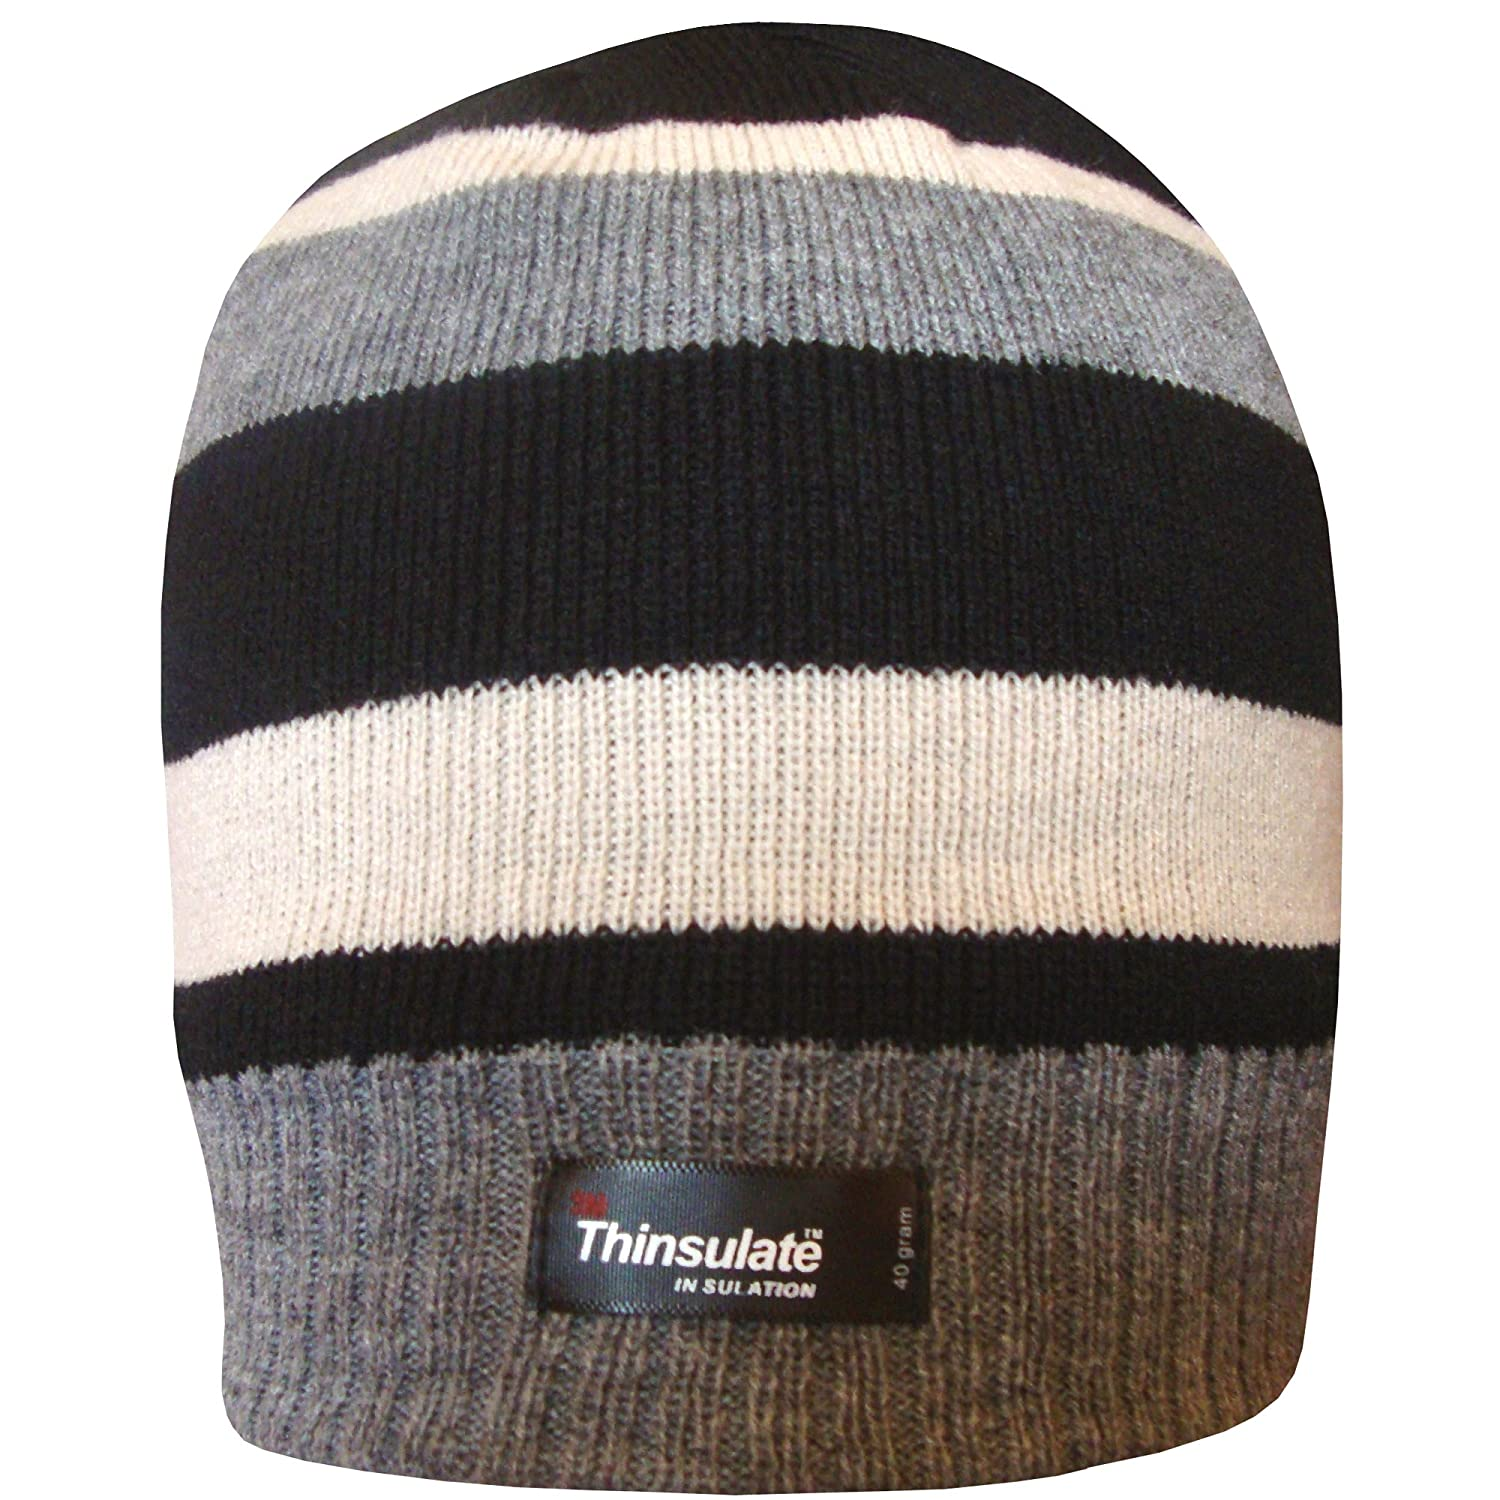 Boy s Black Thinsulate Stripy Thermal Winter Beanie Hat with Fleece Lining   Amazon.co.uk  Clothing fa7af6bbba56